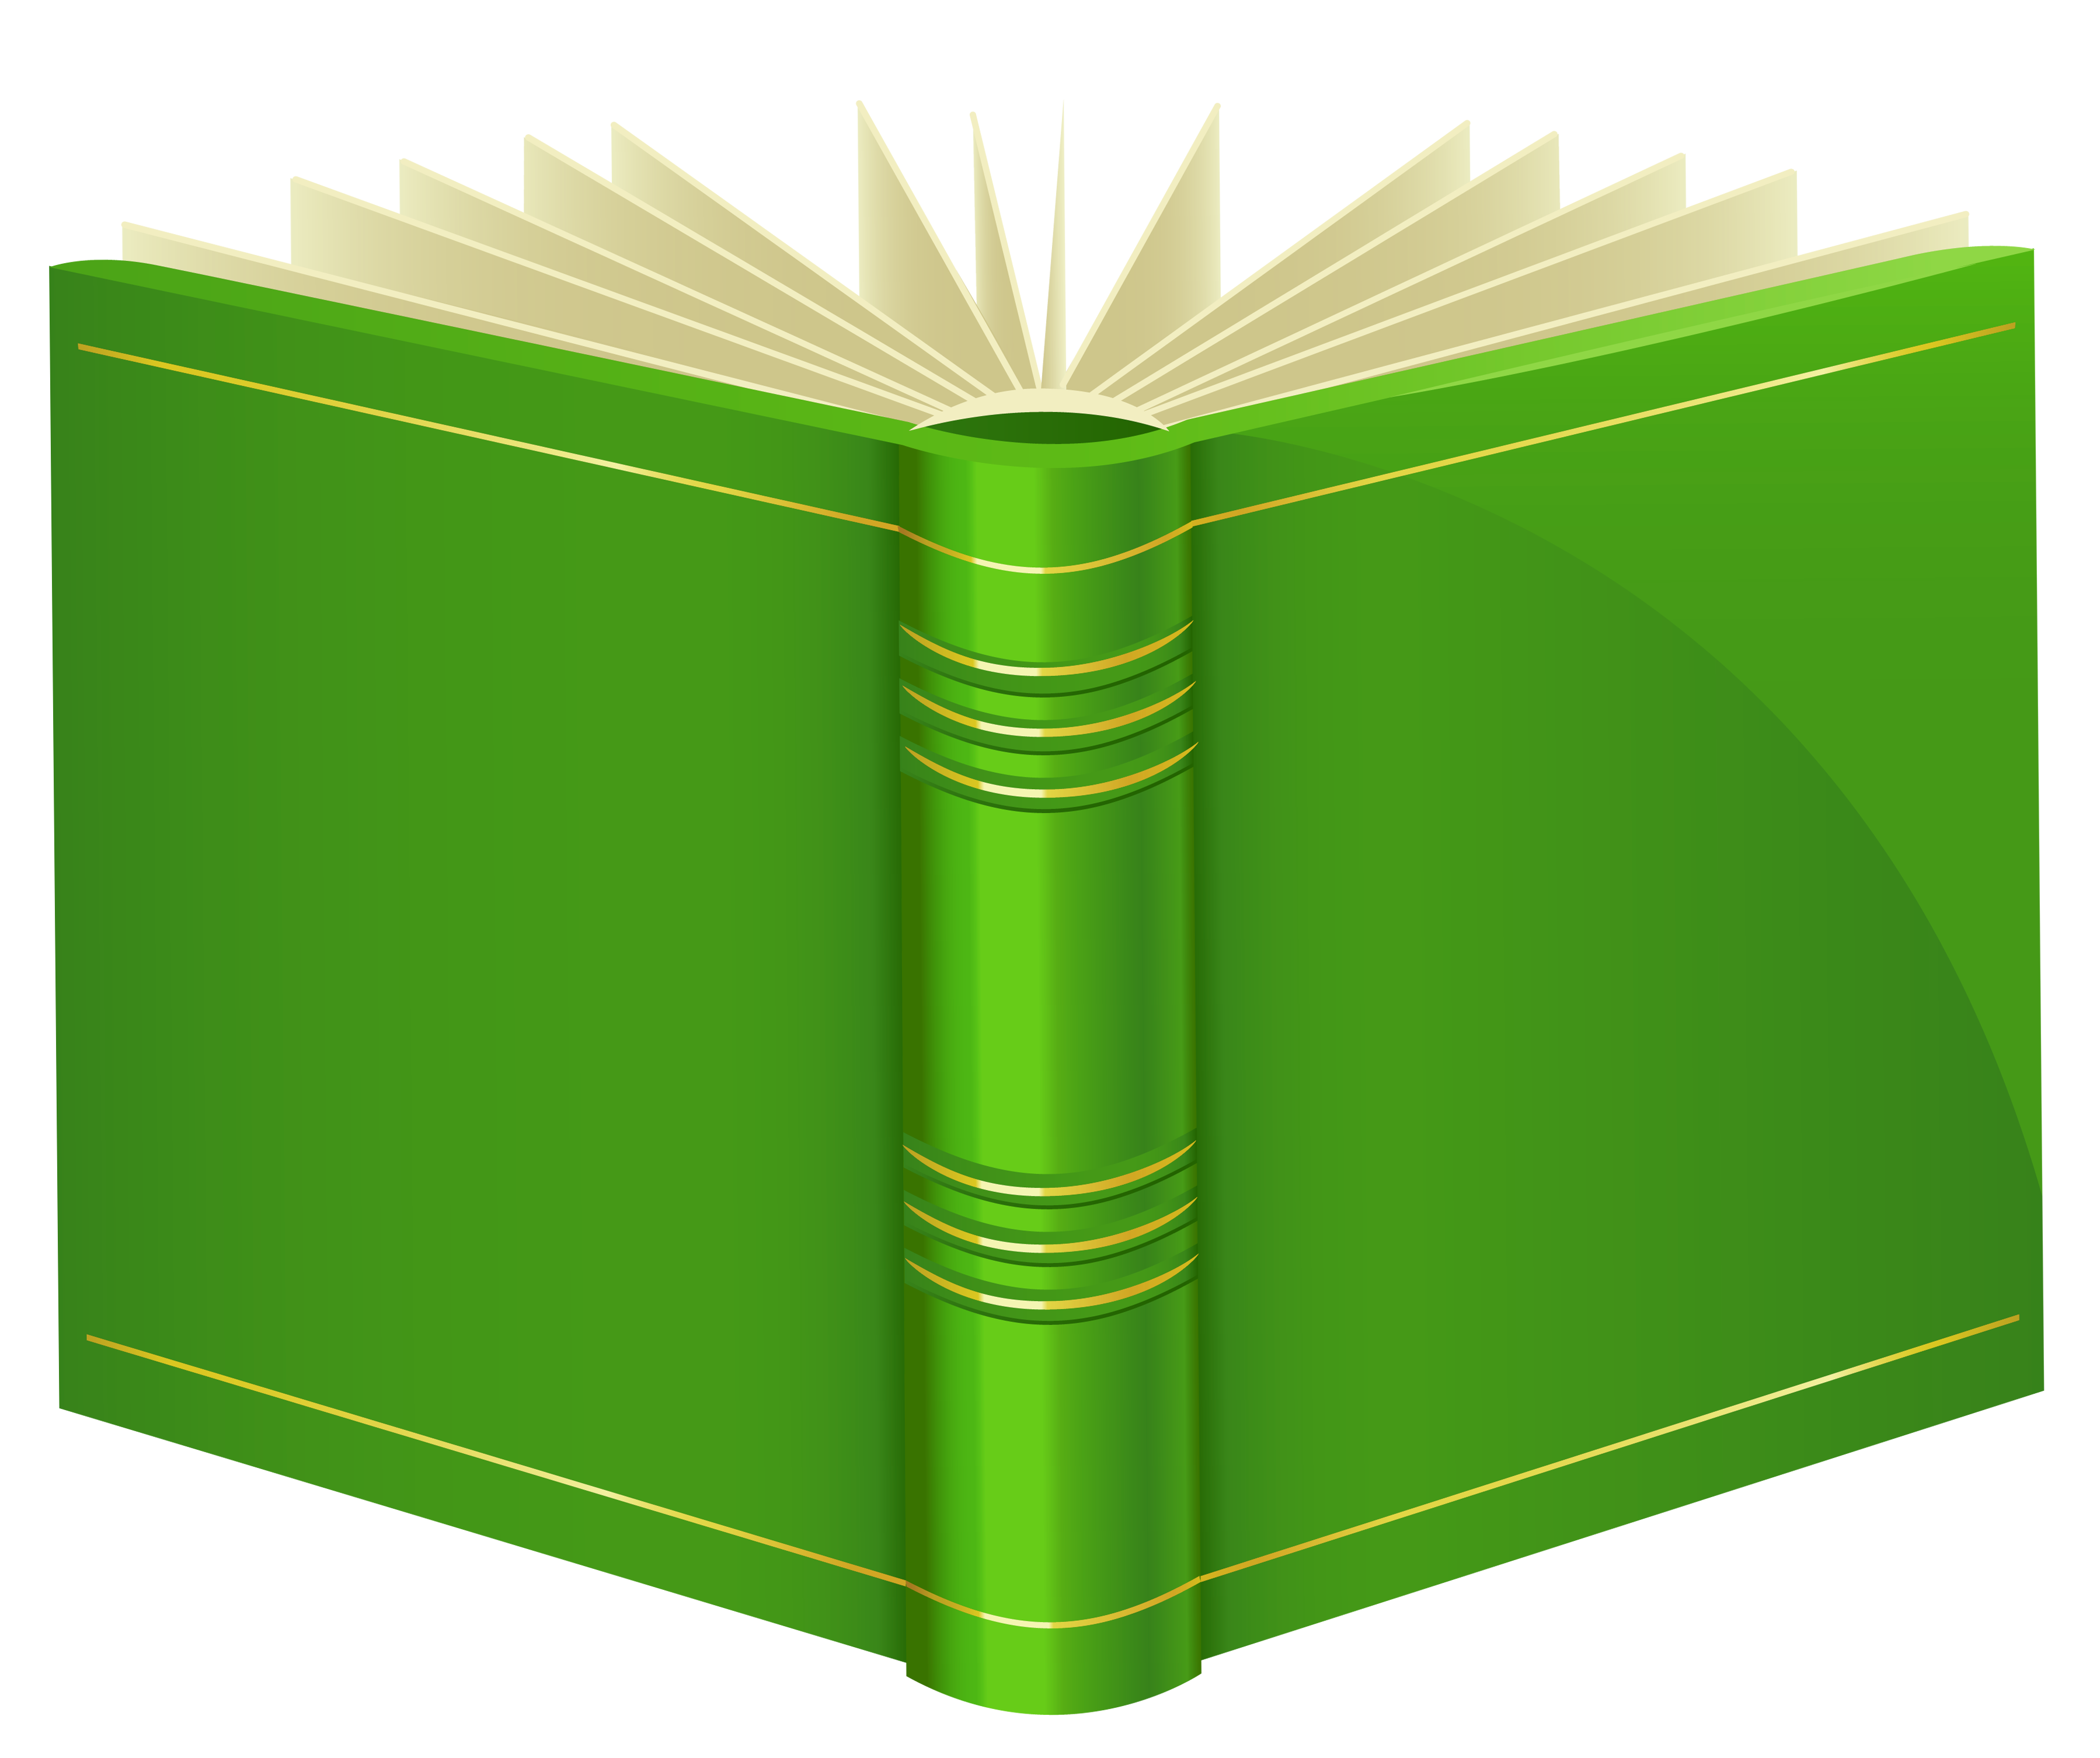 Book png best web. Textbook clipart green